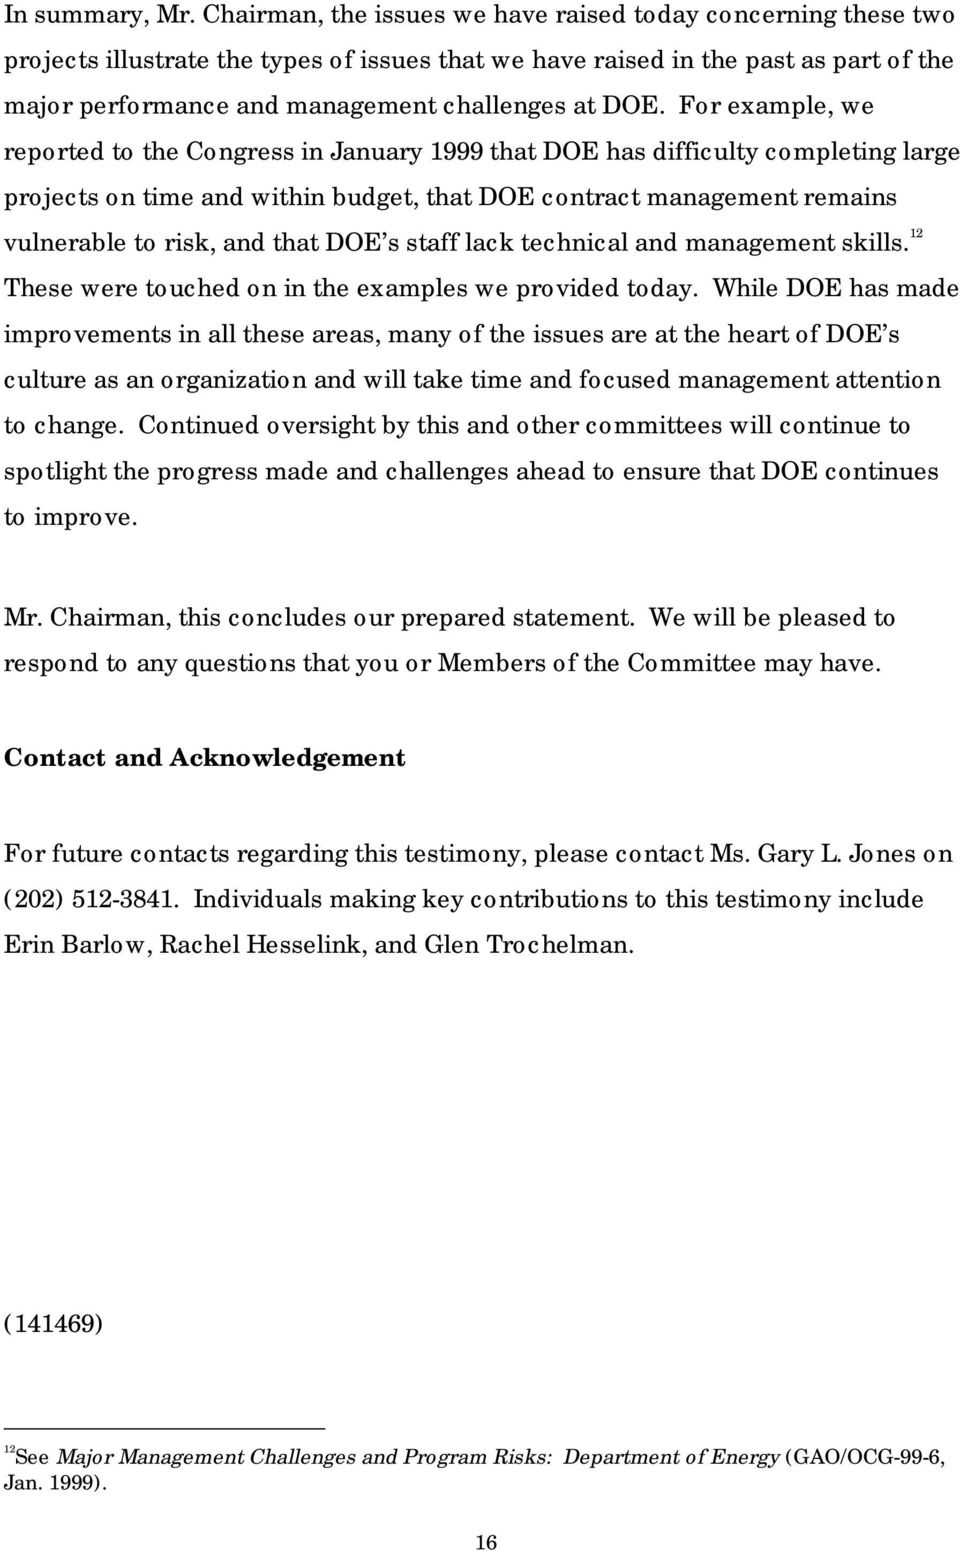 DOE. For example, we reported to the Congress in January 1999 that DOE has difficulty completing large projects on time and within budget, that DOE contract management remains vulnerable to risk, and